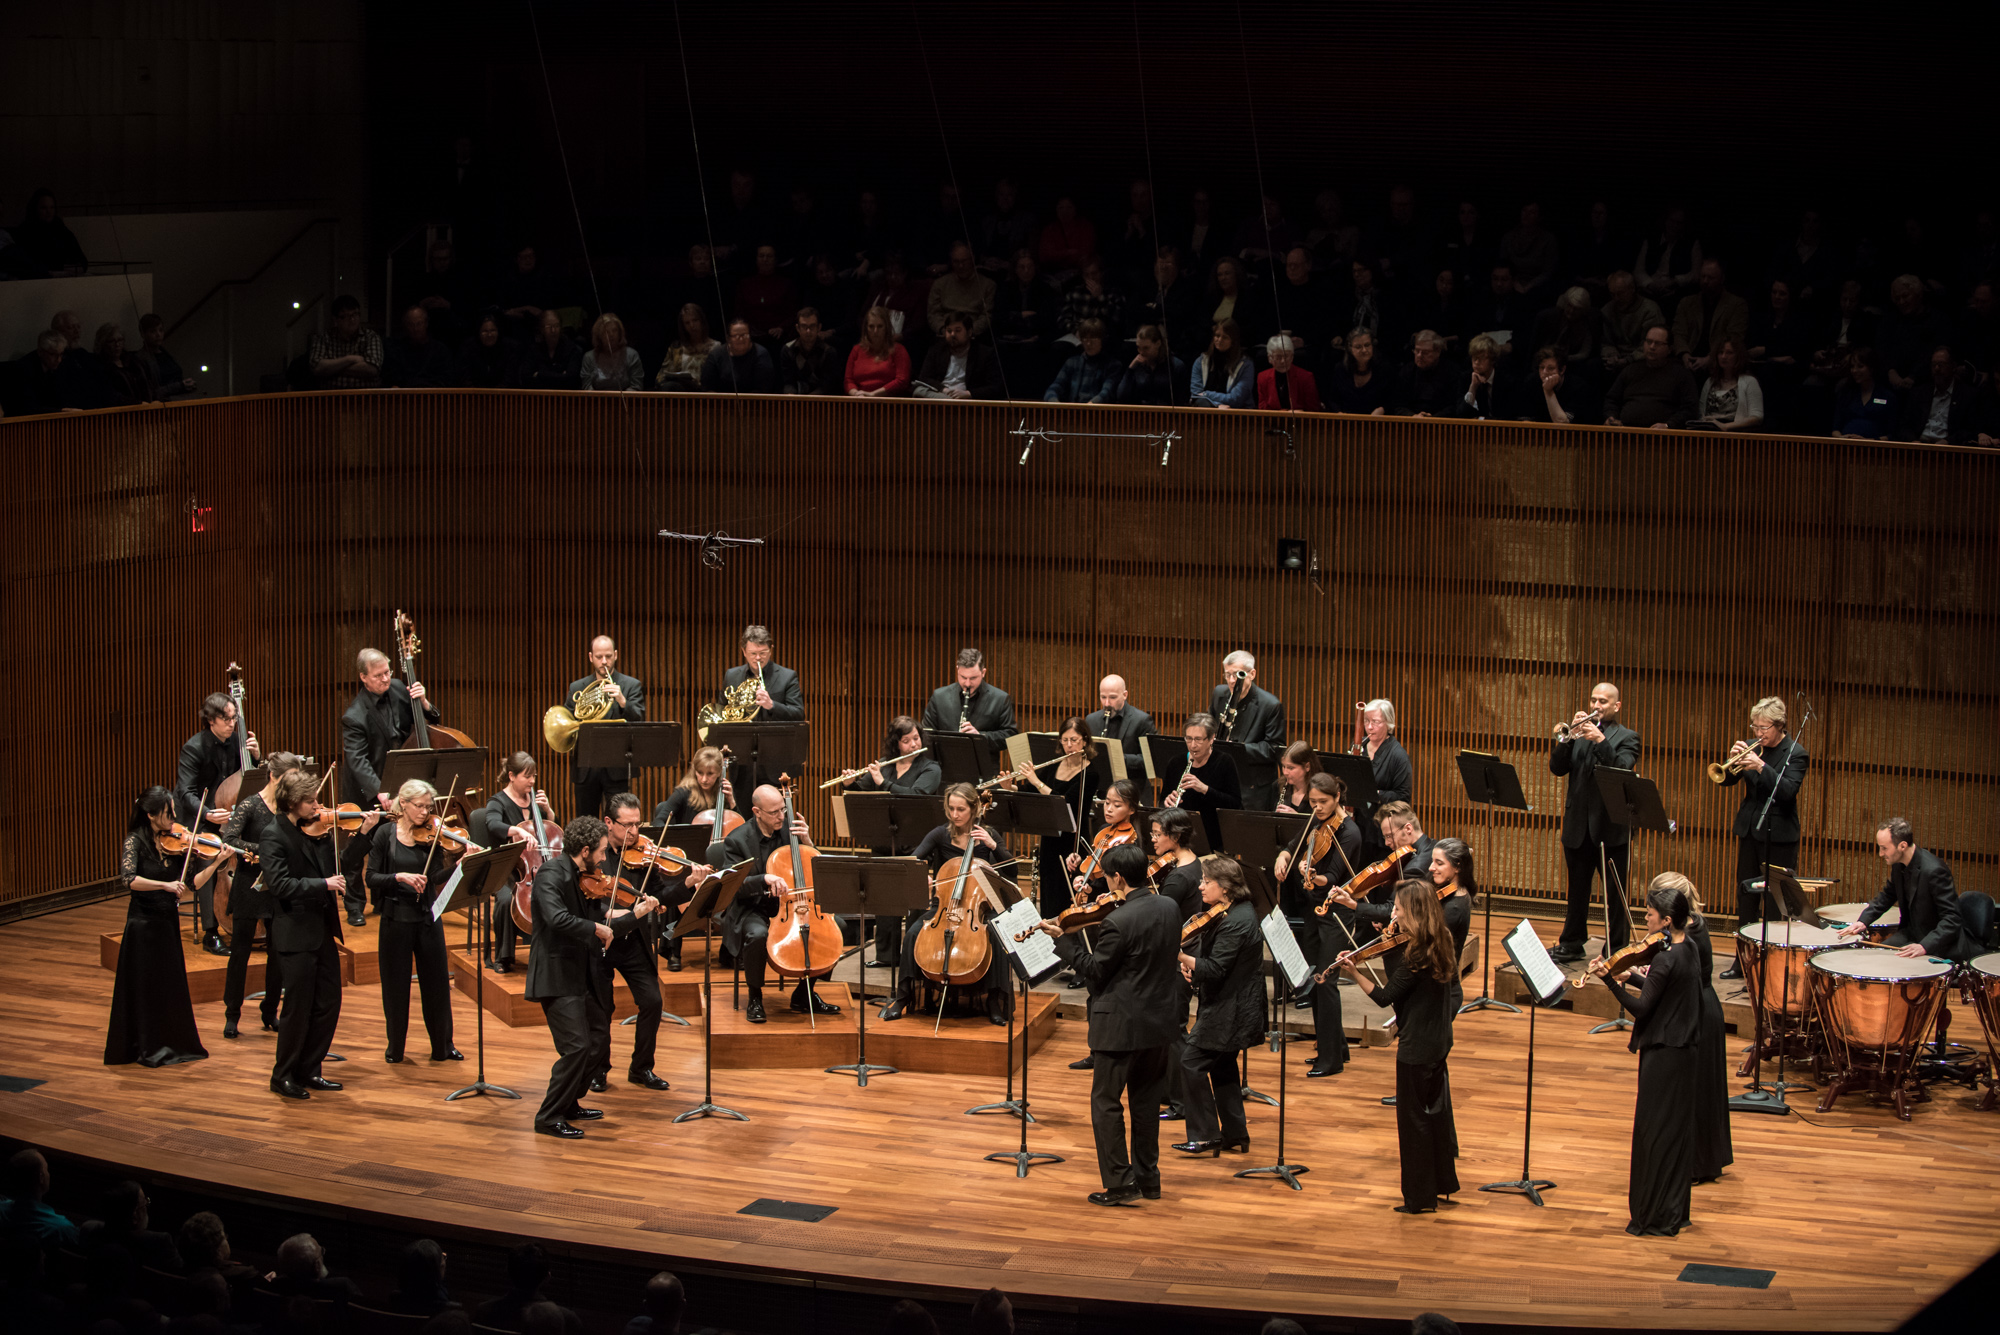 The SPCO onstage at the Ordway's new Concert Hall